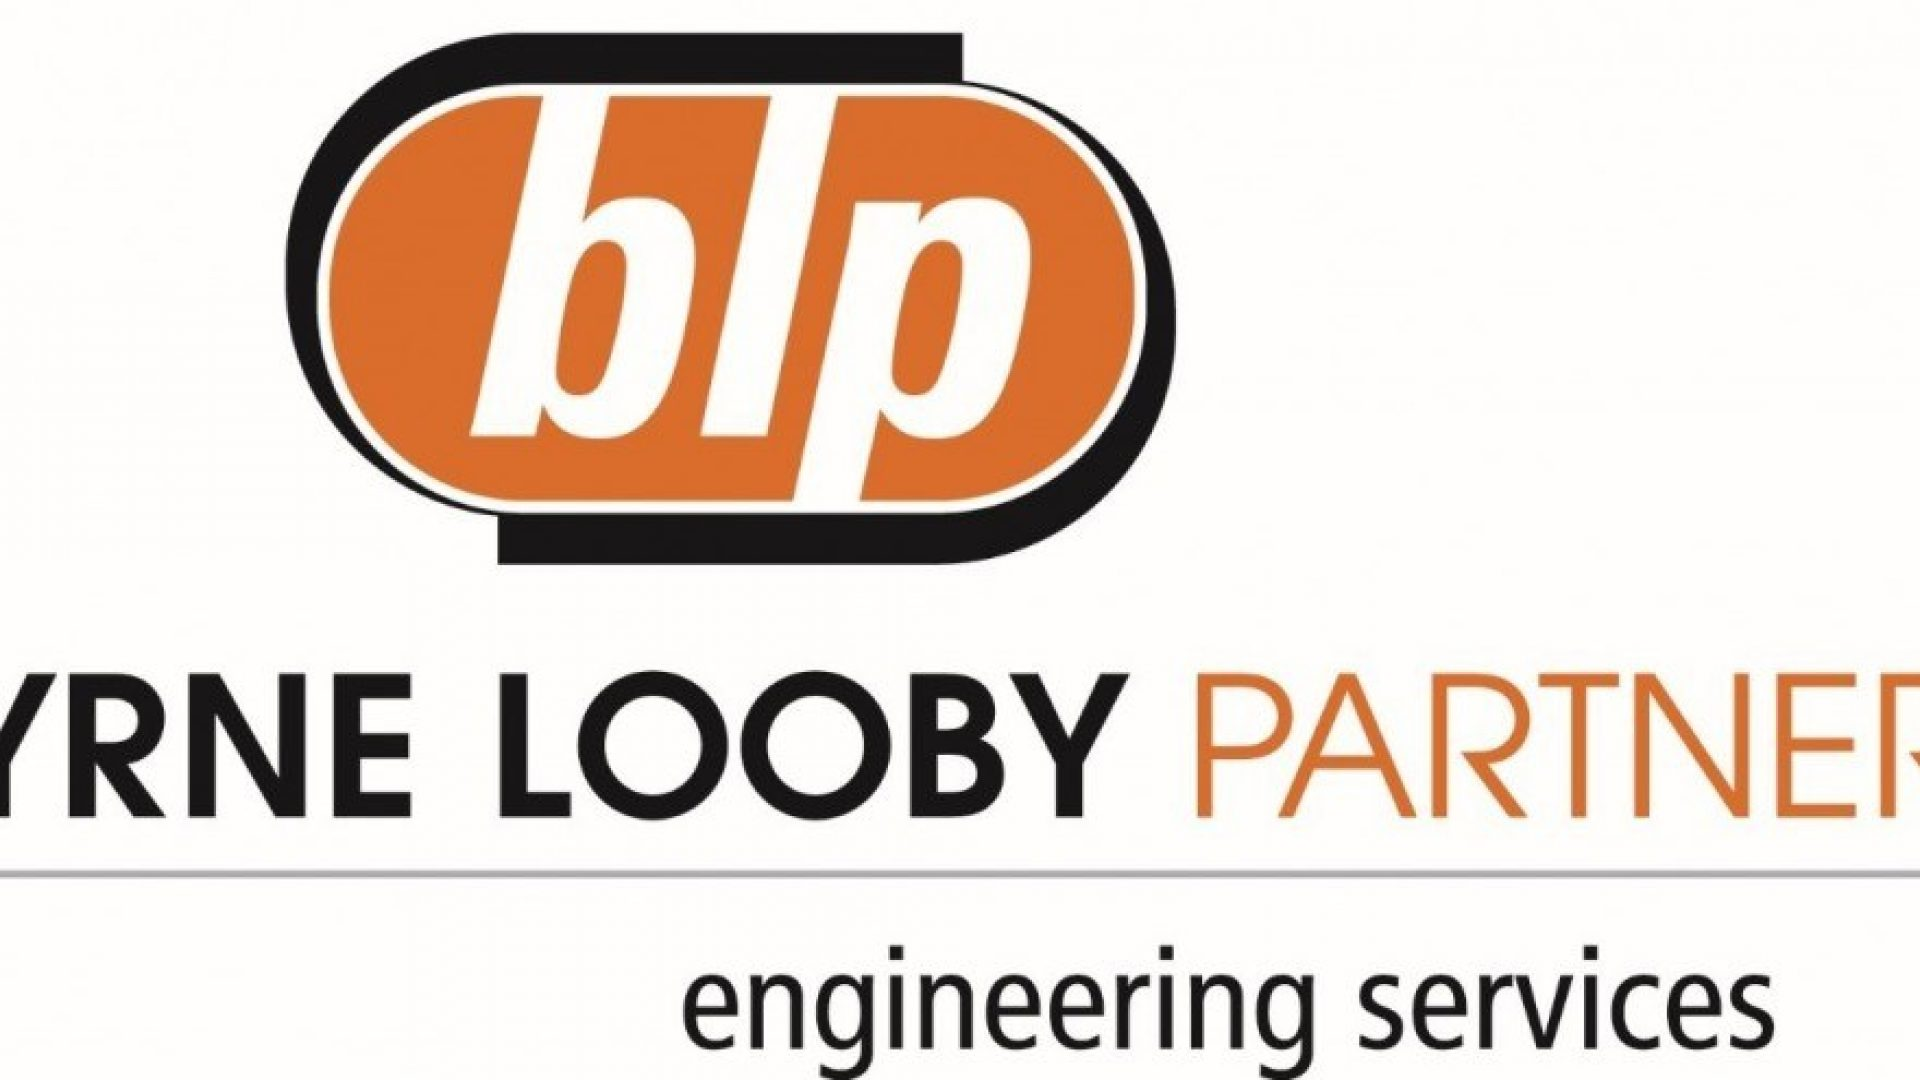 Byrne-Looby-Partners-1024x495